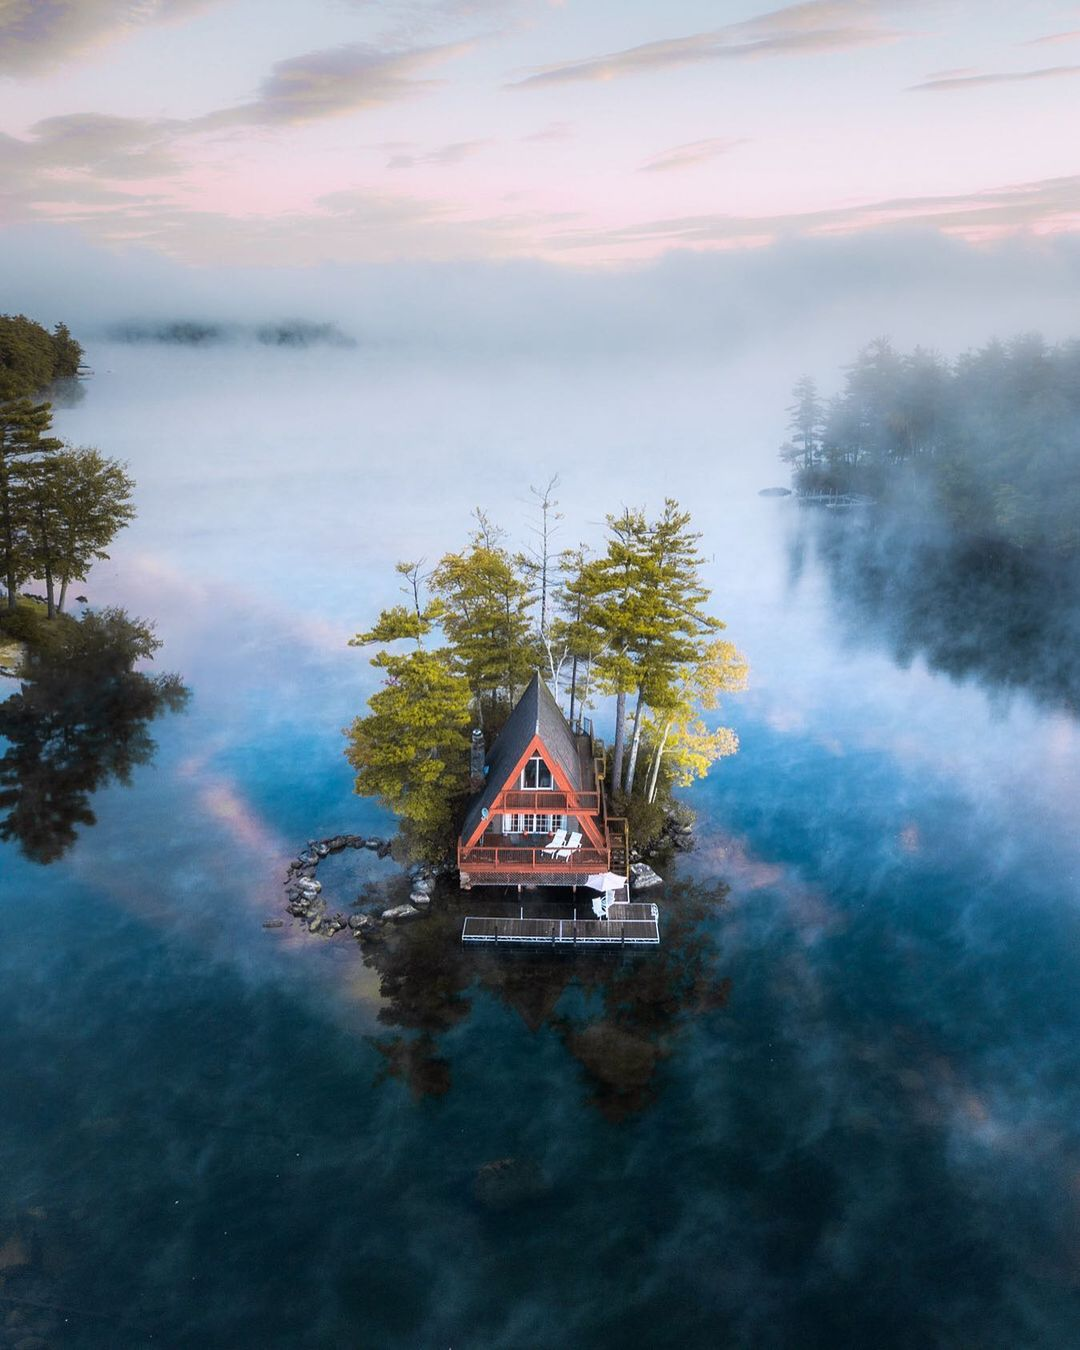 A cabin on the water